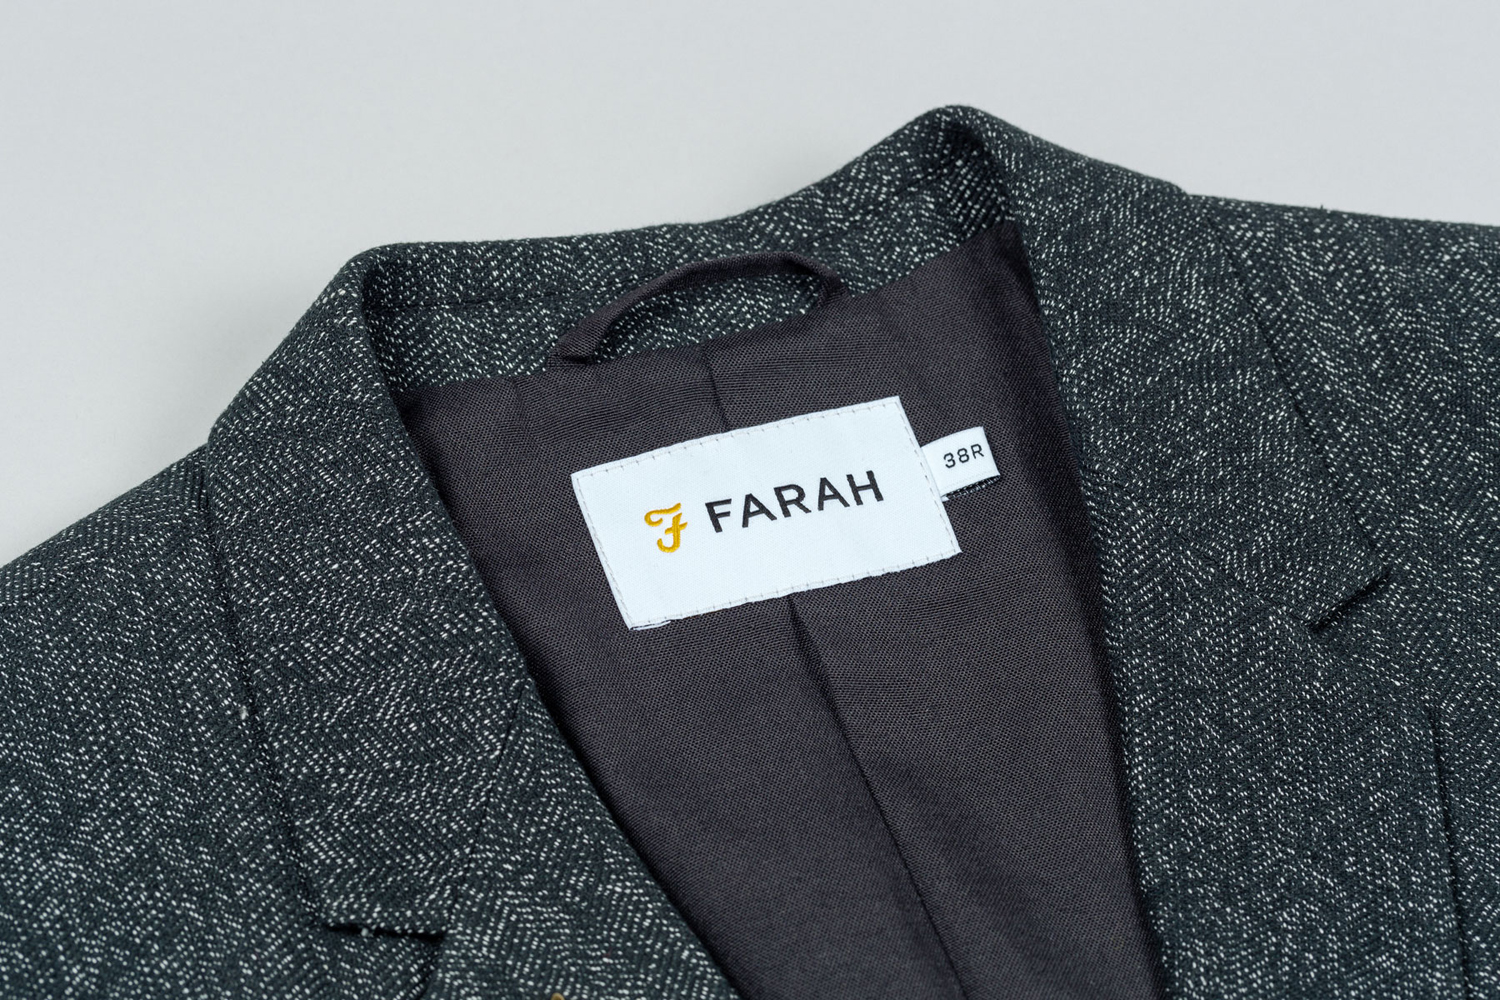 Branding for UK men's fashion brand Farah Farah by graphic design studio Post